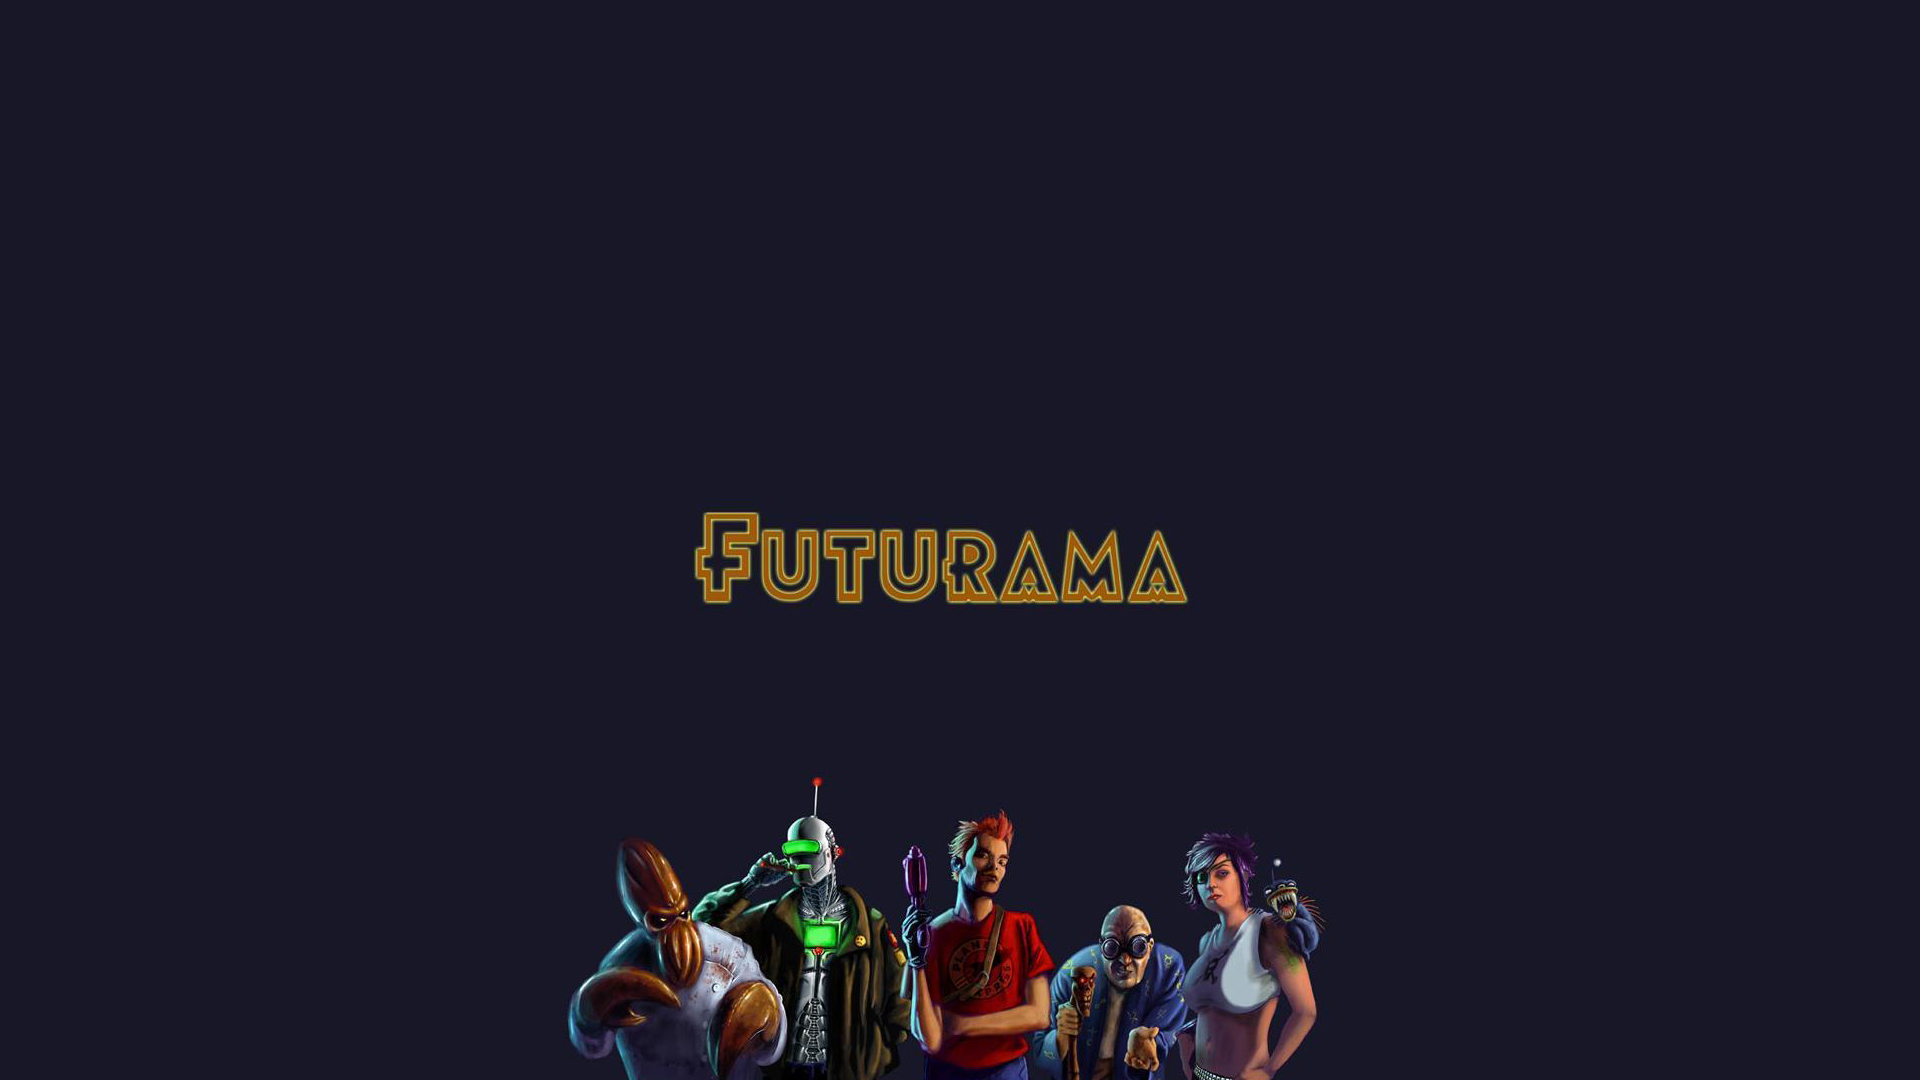 TV Show - Futurama Wallpaper